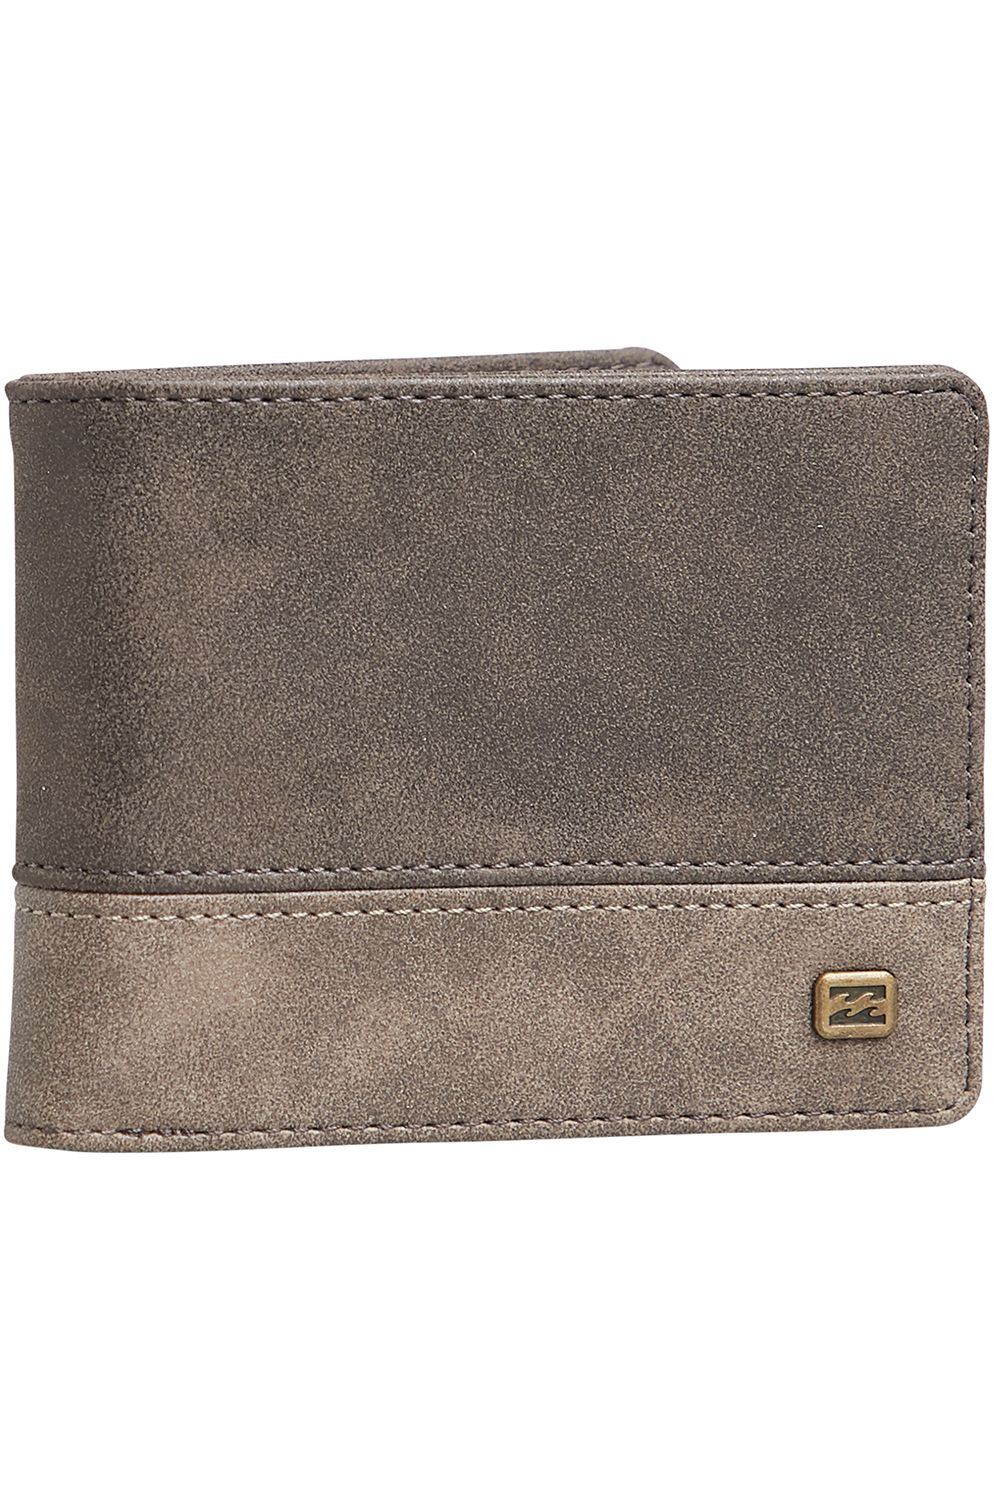 Billabong Wallet DIMENSION Mud